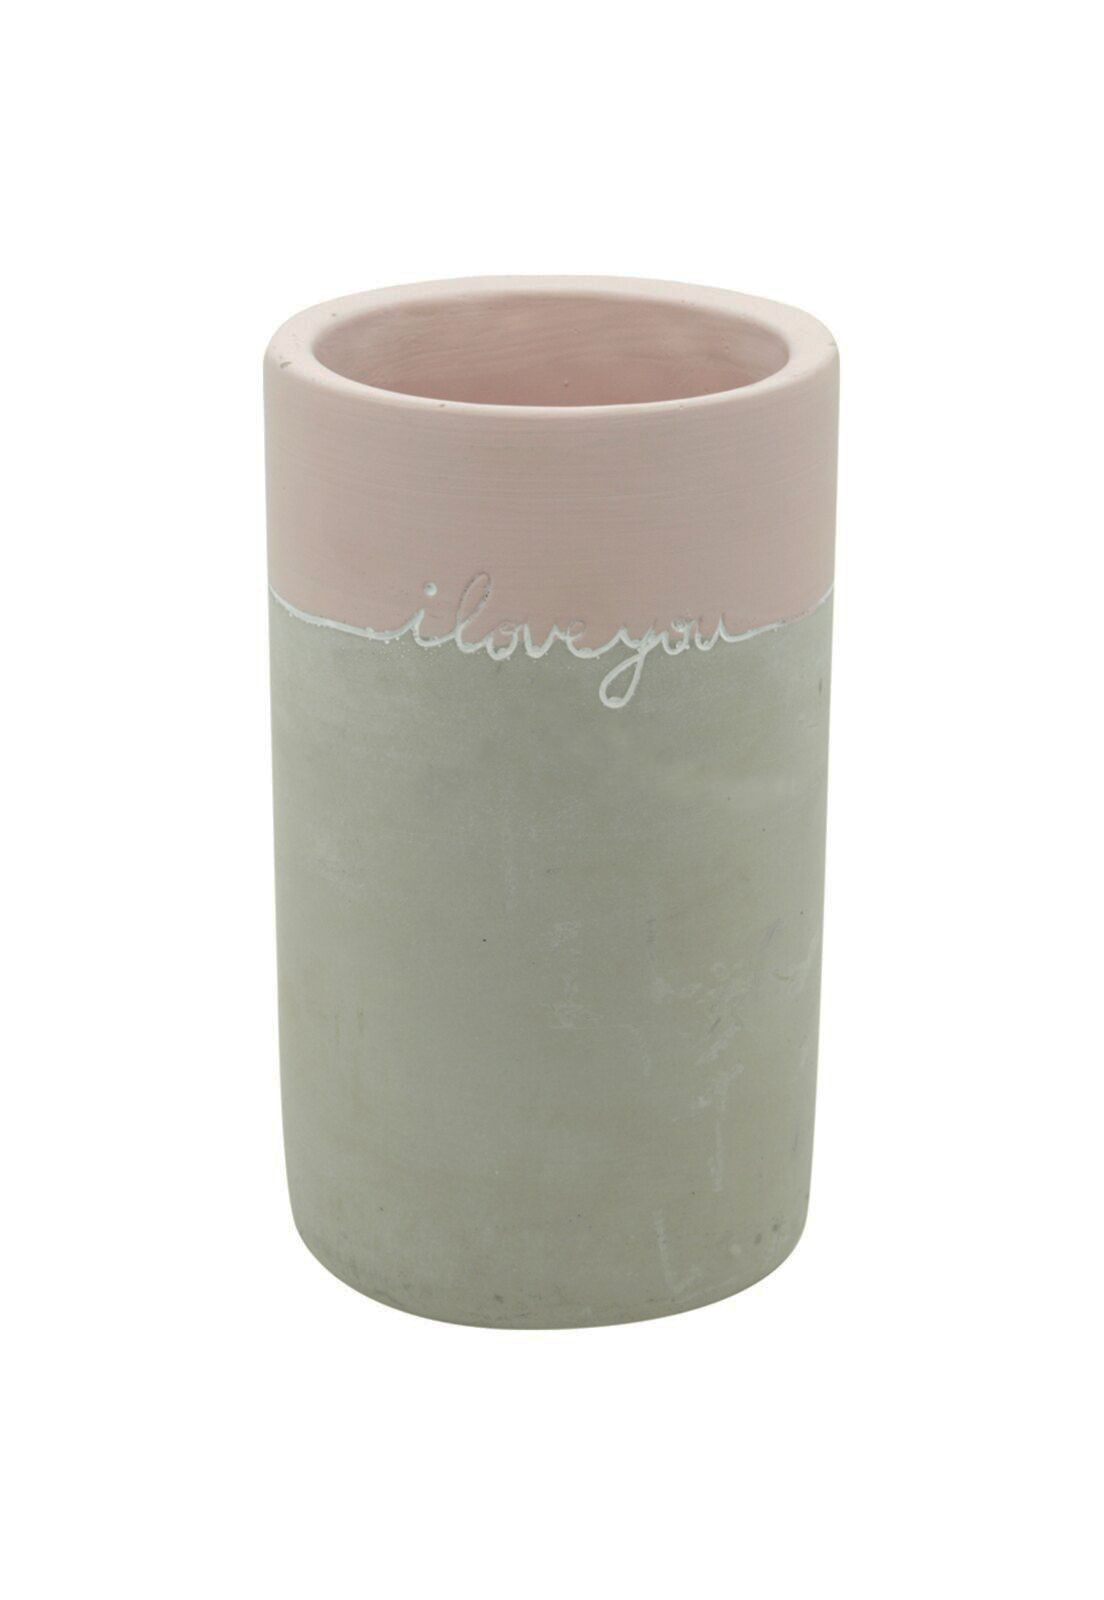 VASO CONCRETO I LOVE YOU LONG ROSA/CINZA 11X11X19cm  - URBAN